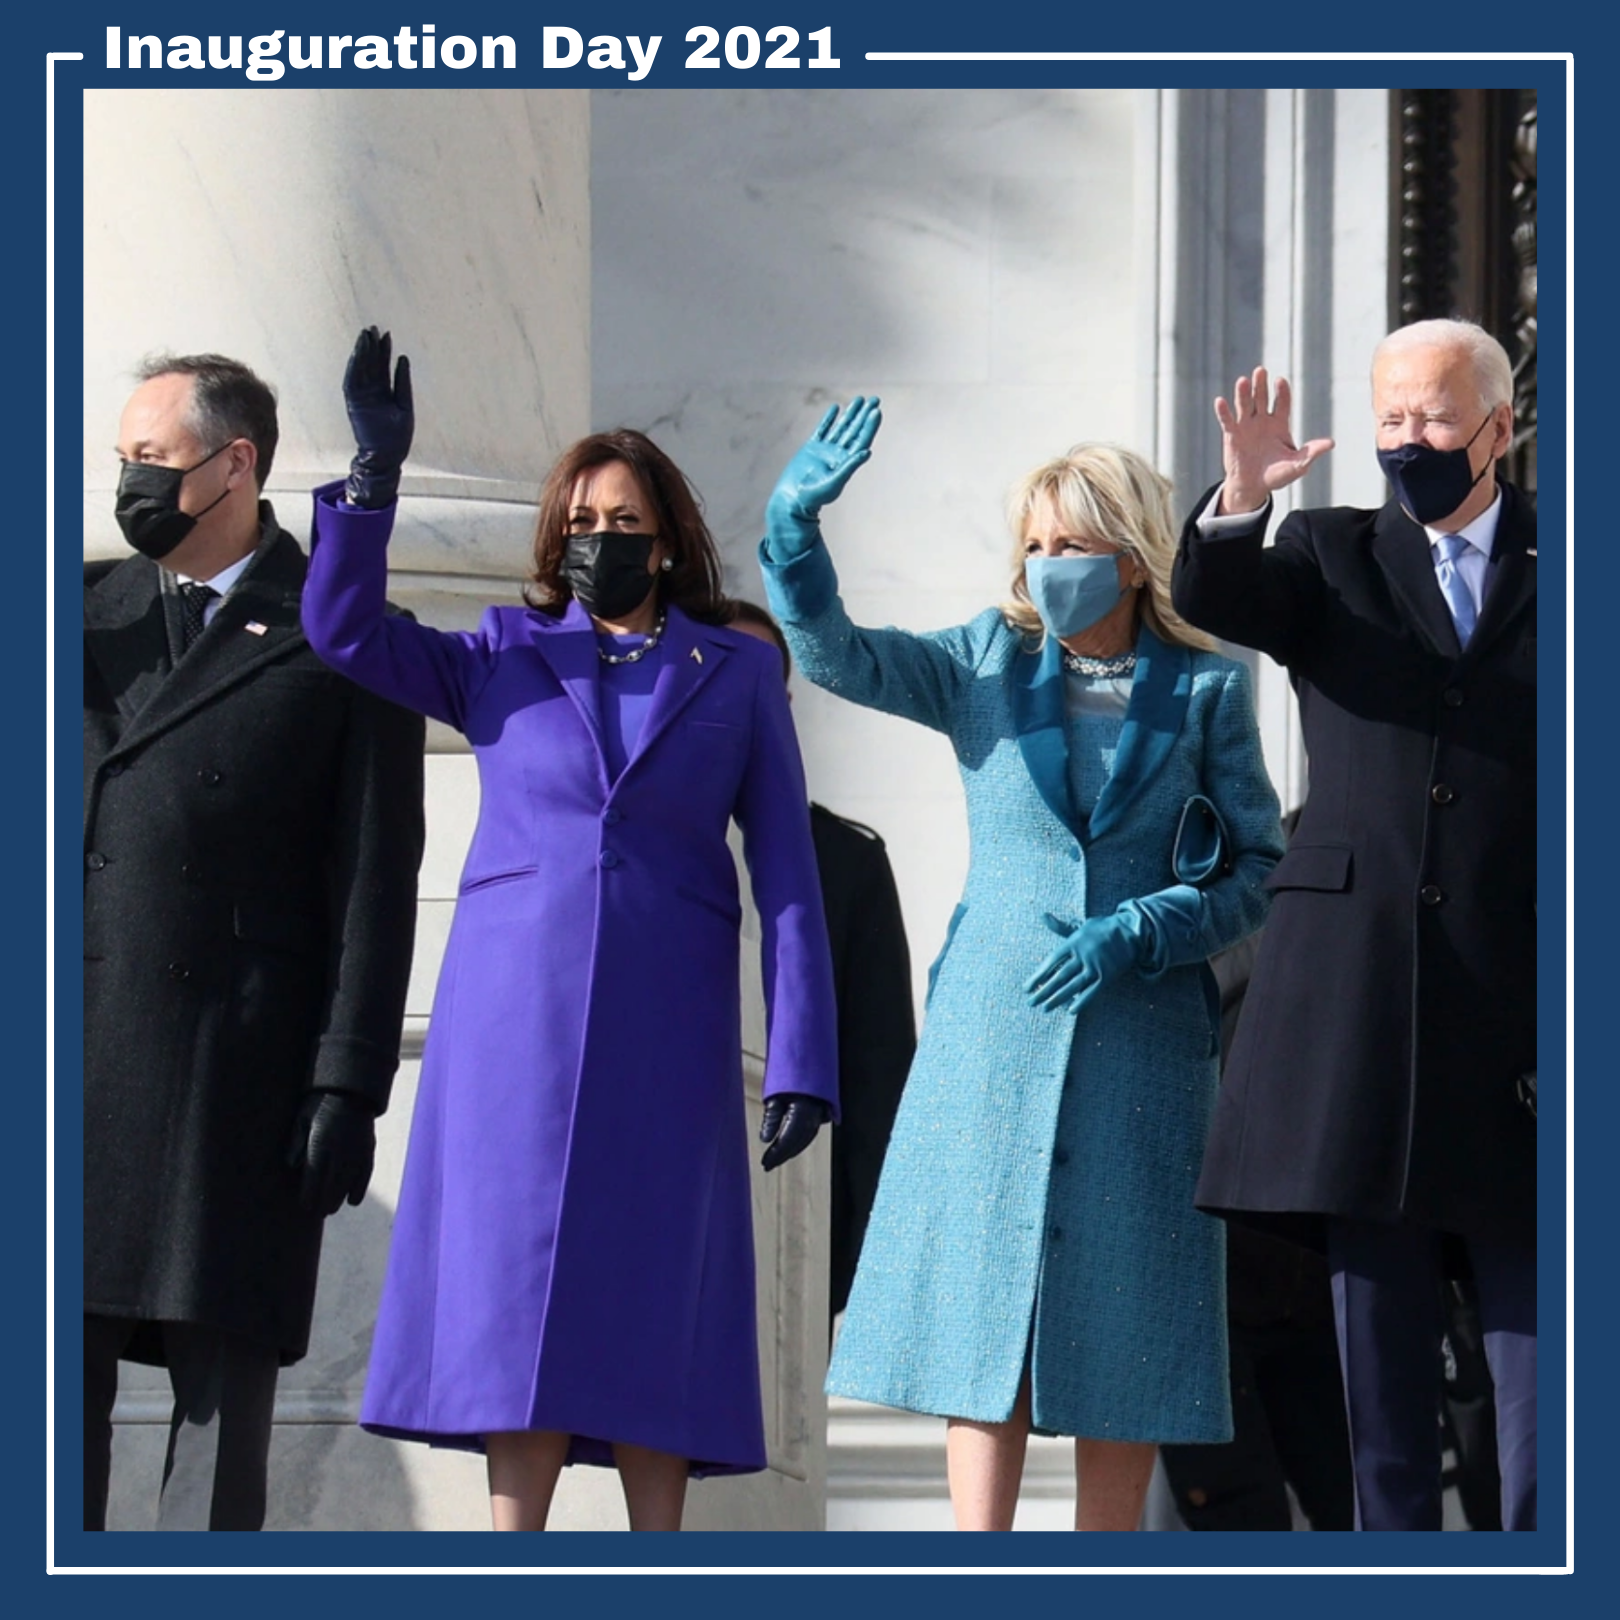 Inauguration Day 2021 showing President Joe Biden and Vice President Kamala Harris